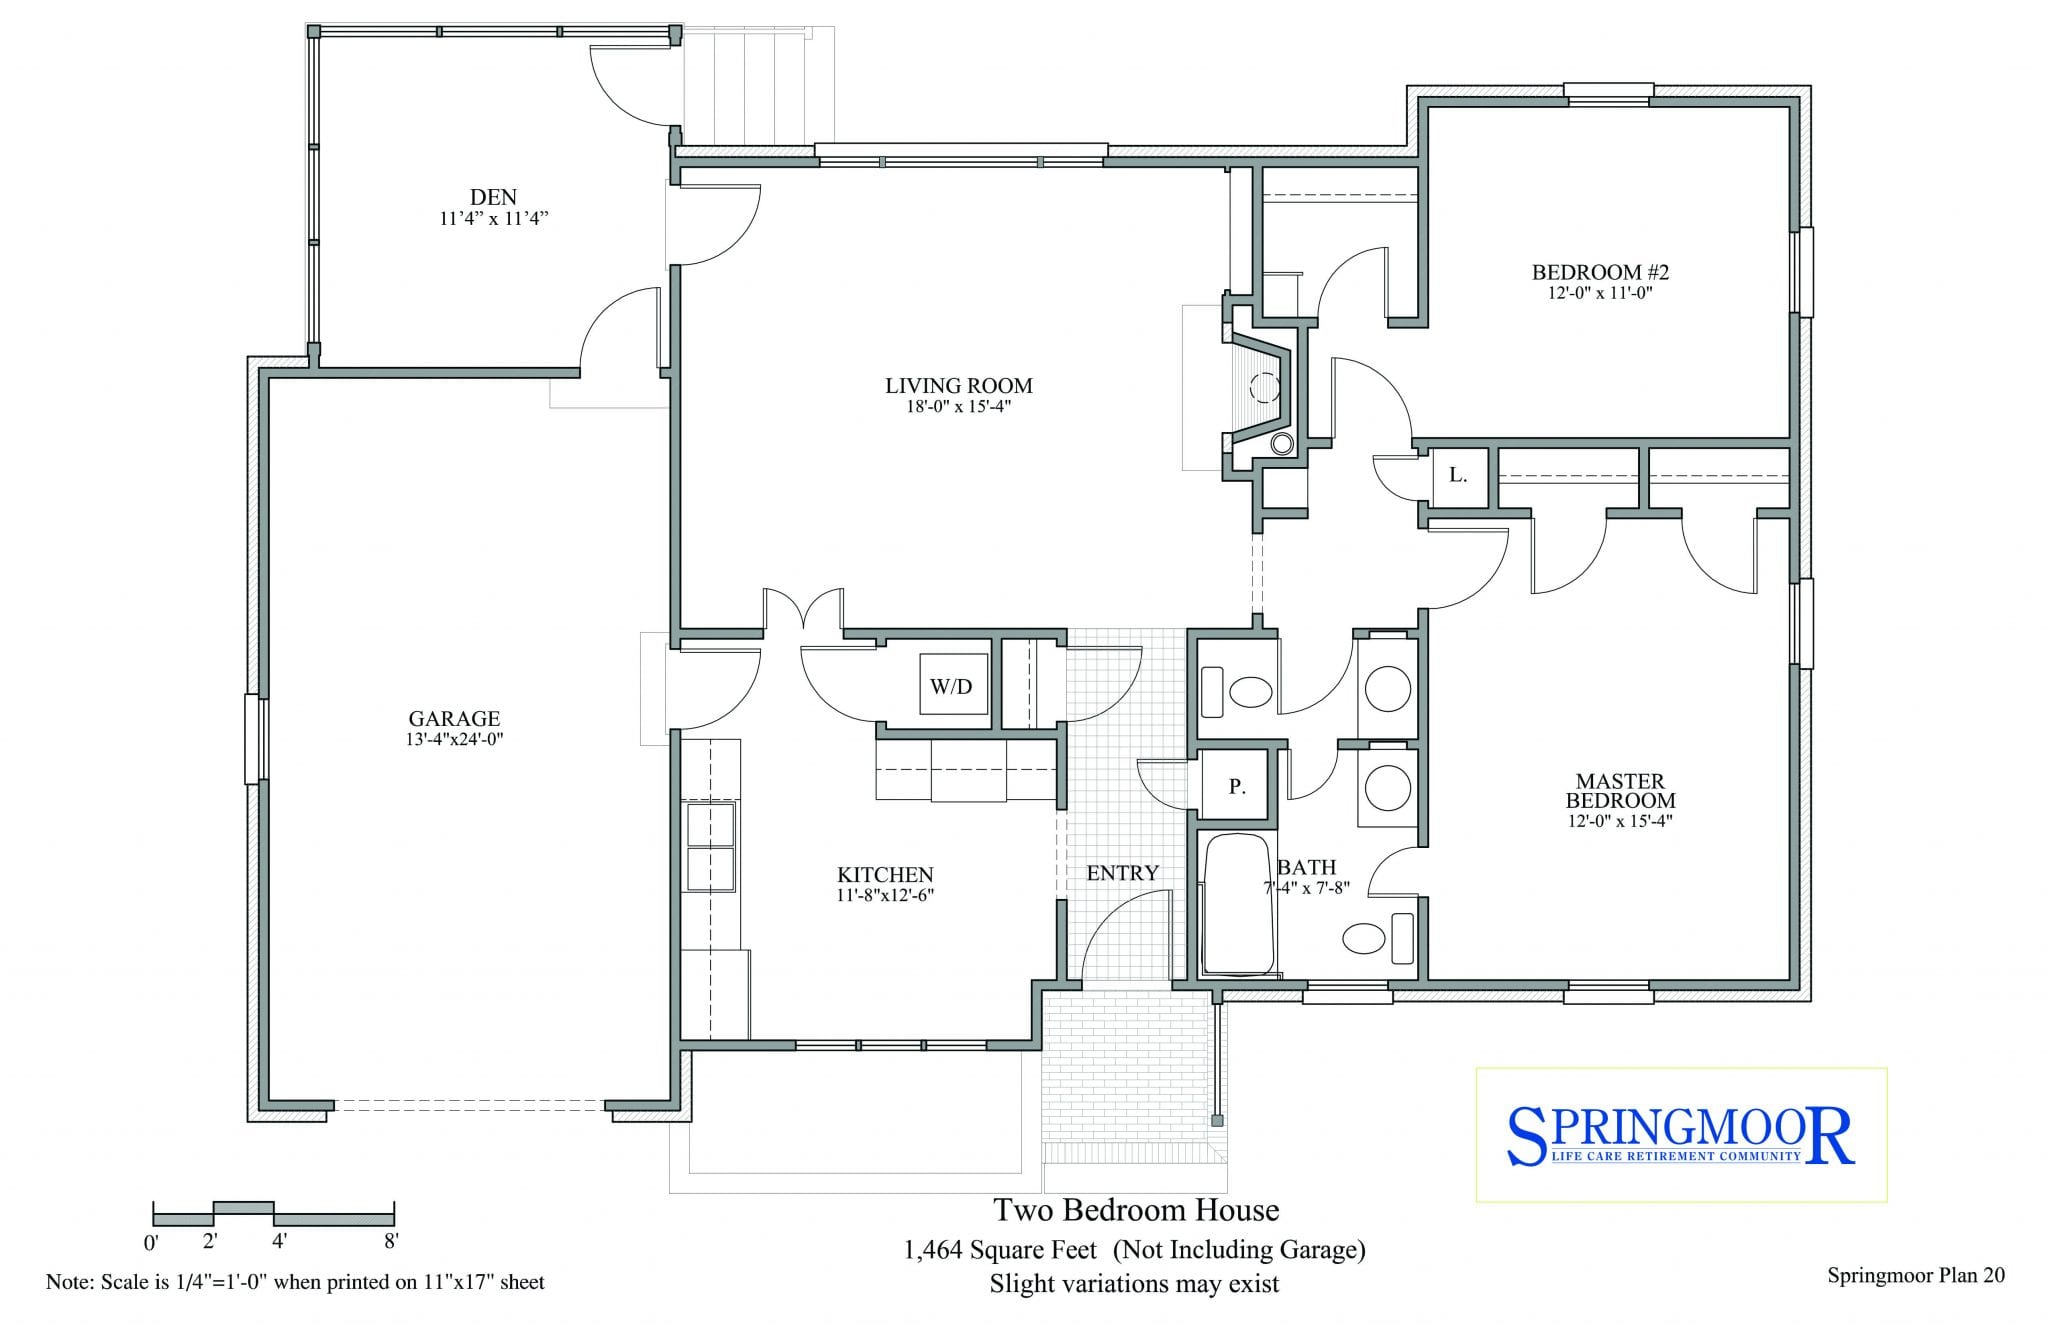 Two Bedroom House Floor Plan Option With A Bath And A Half